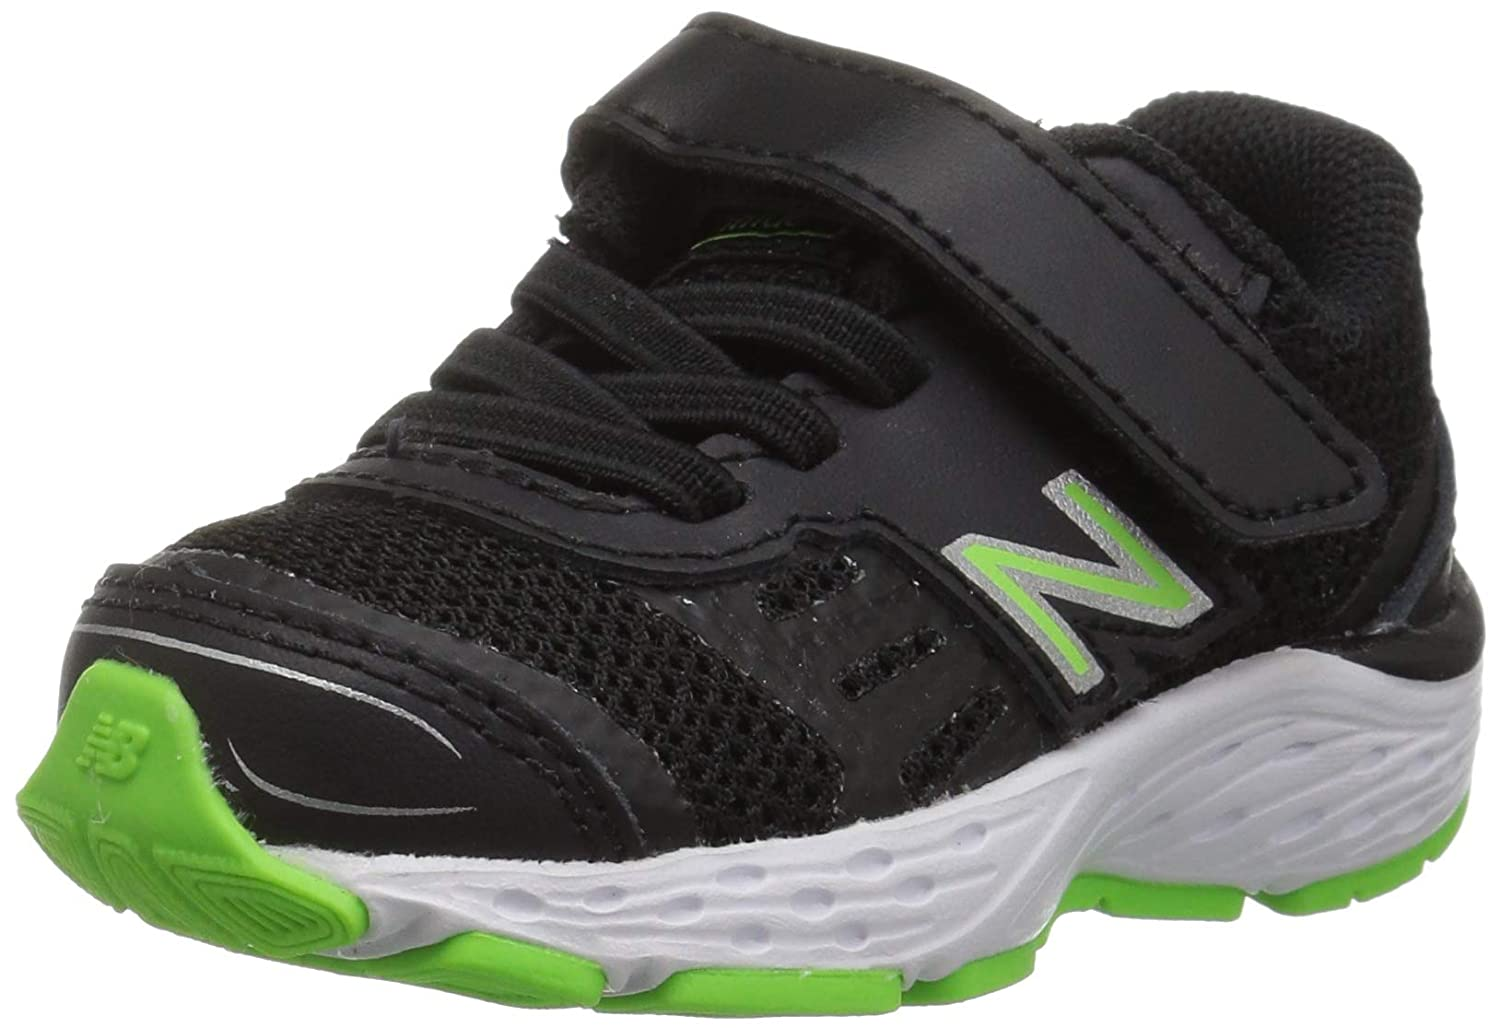 割引クーポン [ニューバランス] ユニセックスキッズ NB19-IA680AG-Infant Girls B07BQKT29L Black/Rbg Black US/Rbg Toddler Green 幼児(1~4才) 幼児(1~4才)|Black/Rbg Green|5 XW US Toddler, ハンドメイド雑貨Lacery de Rose:55a03217 --- mfphoto.ie